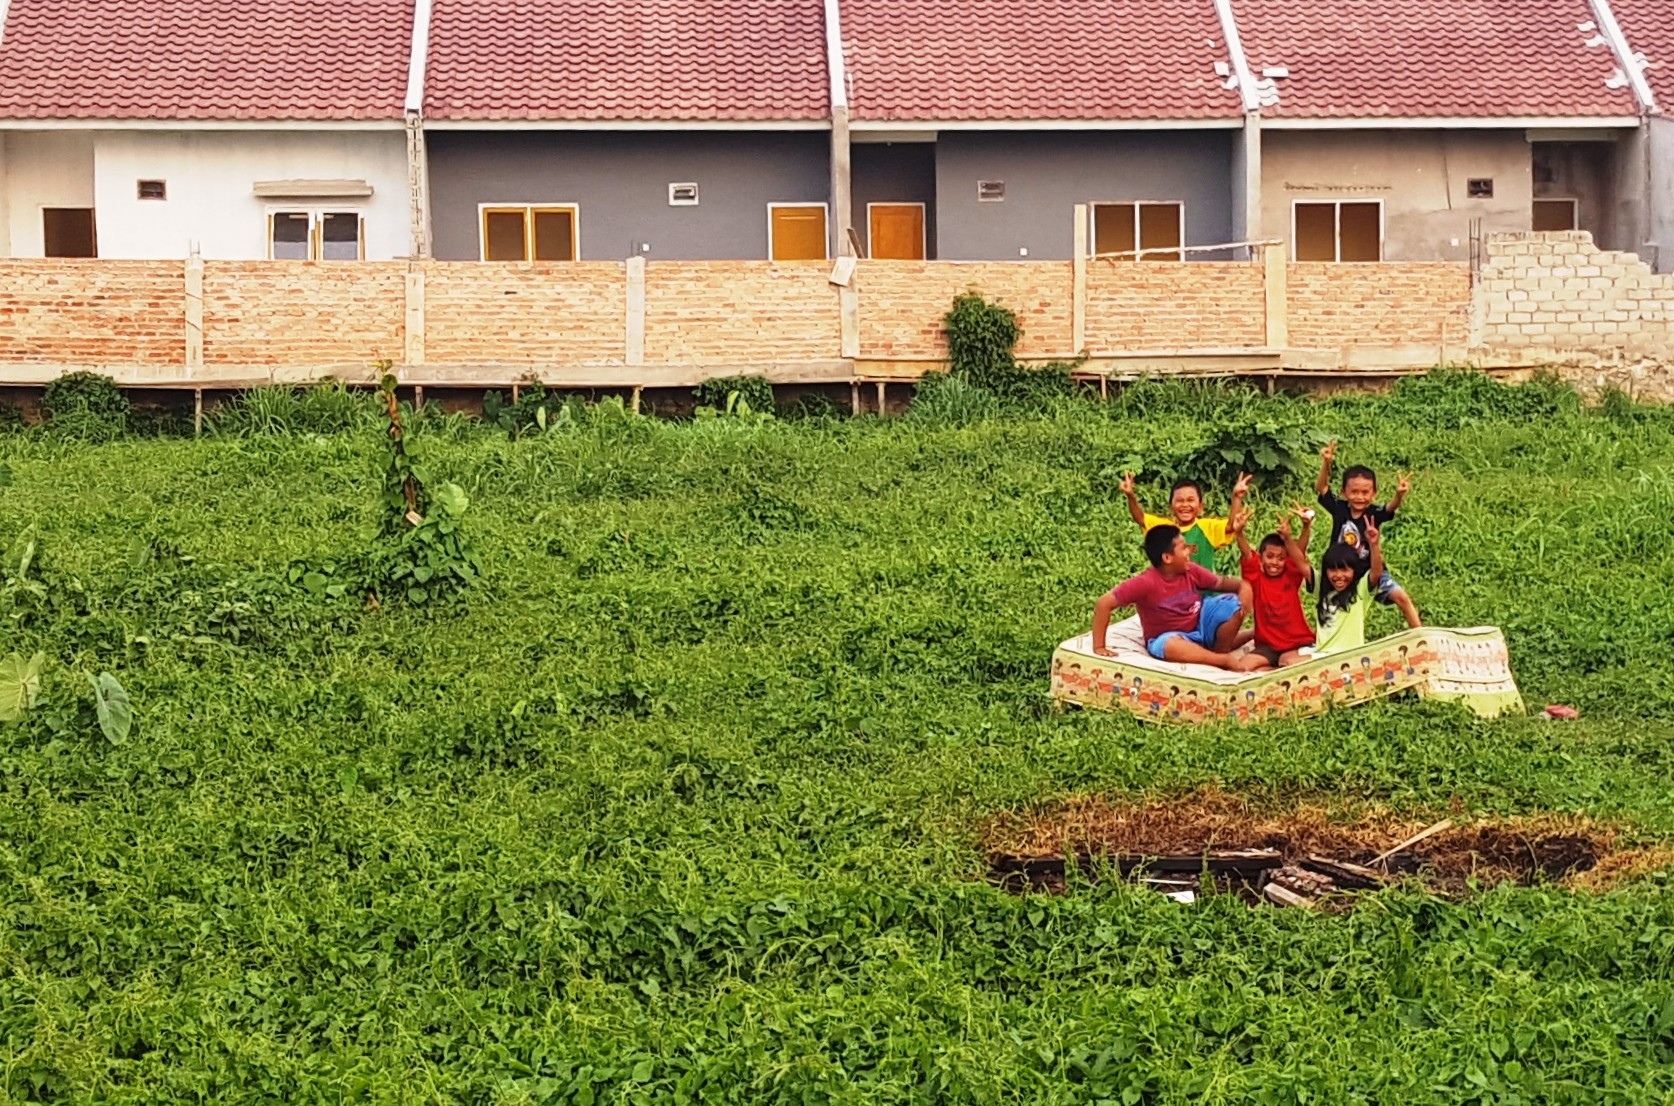 Children playing on a mattress outside Balikpapan housing complex, East Kalimantan, Indonesia